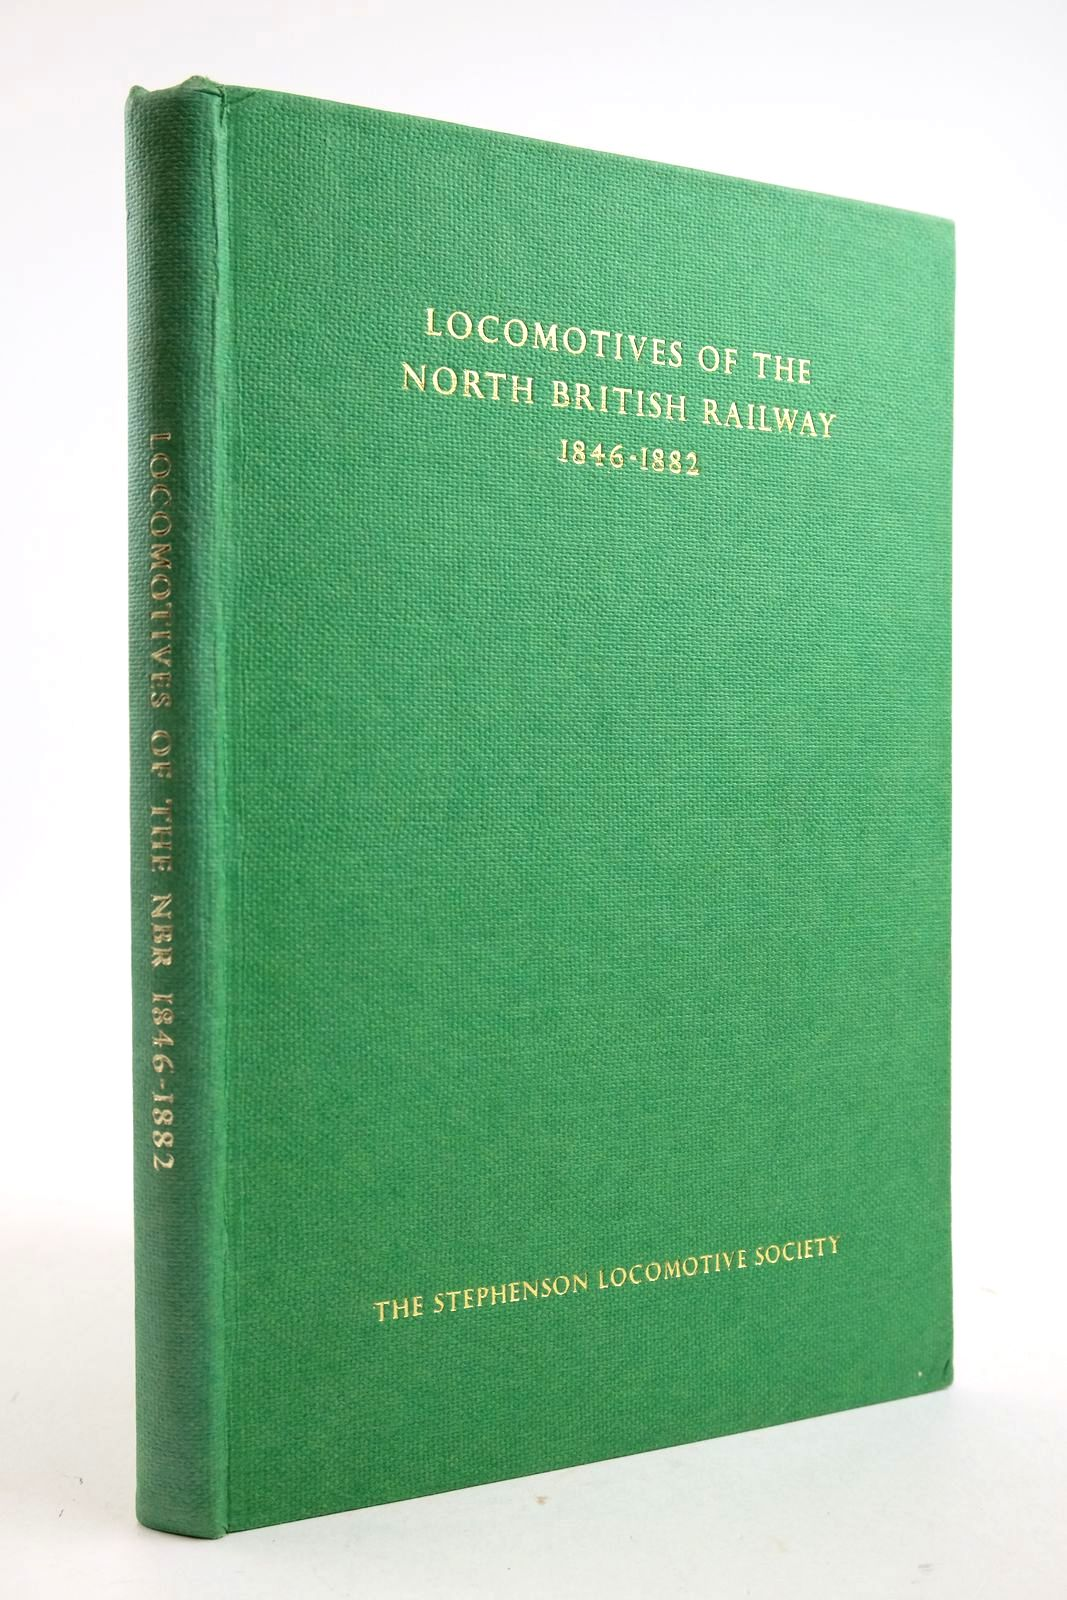 Photo of LOCOMOTIVES OF THE NORTH BRITISH RAILWAY 1846-1882 published by The Stephenson Locomotive Society (STOCK CODE: 2133321)  for sale by Stella & Rose's Books